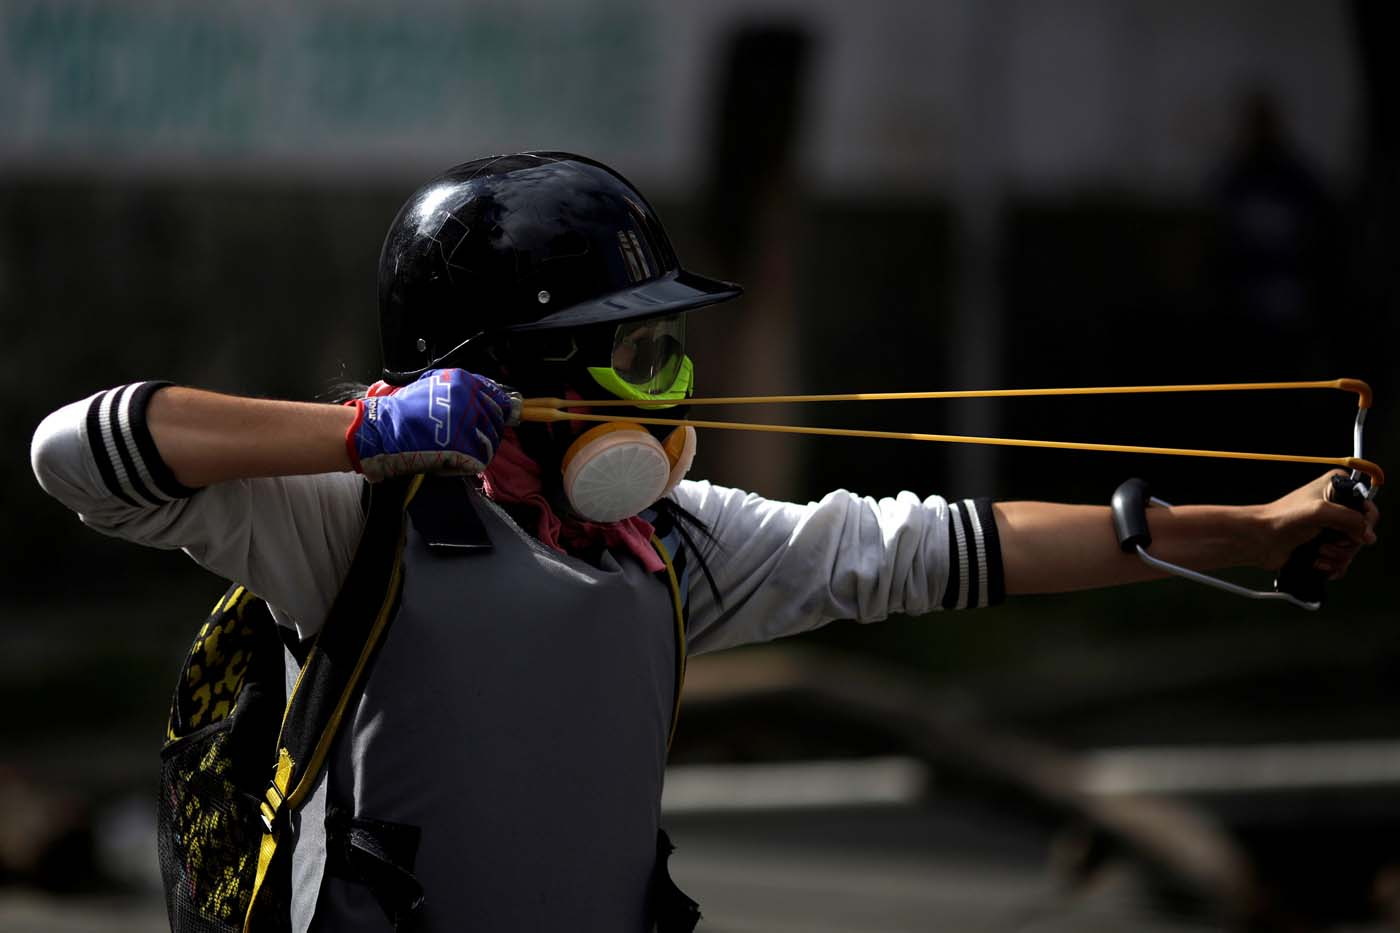 A demonstrator uses a slingshot during a strike called to protest against Venezuelan President Nicolas Maduro's government in Caracas, Venezuela July 26, 2017. REUTERS/Marco Bello